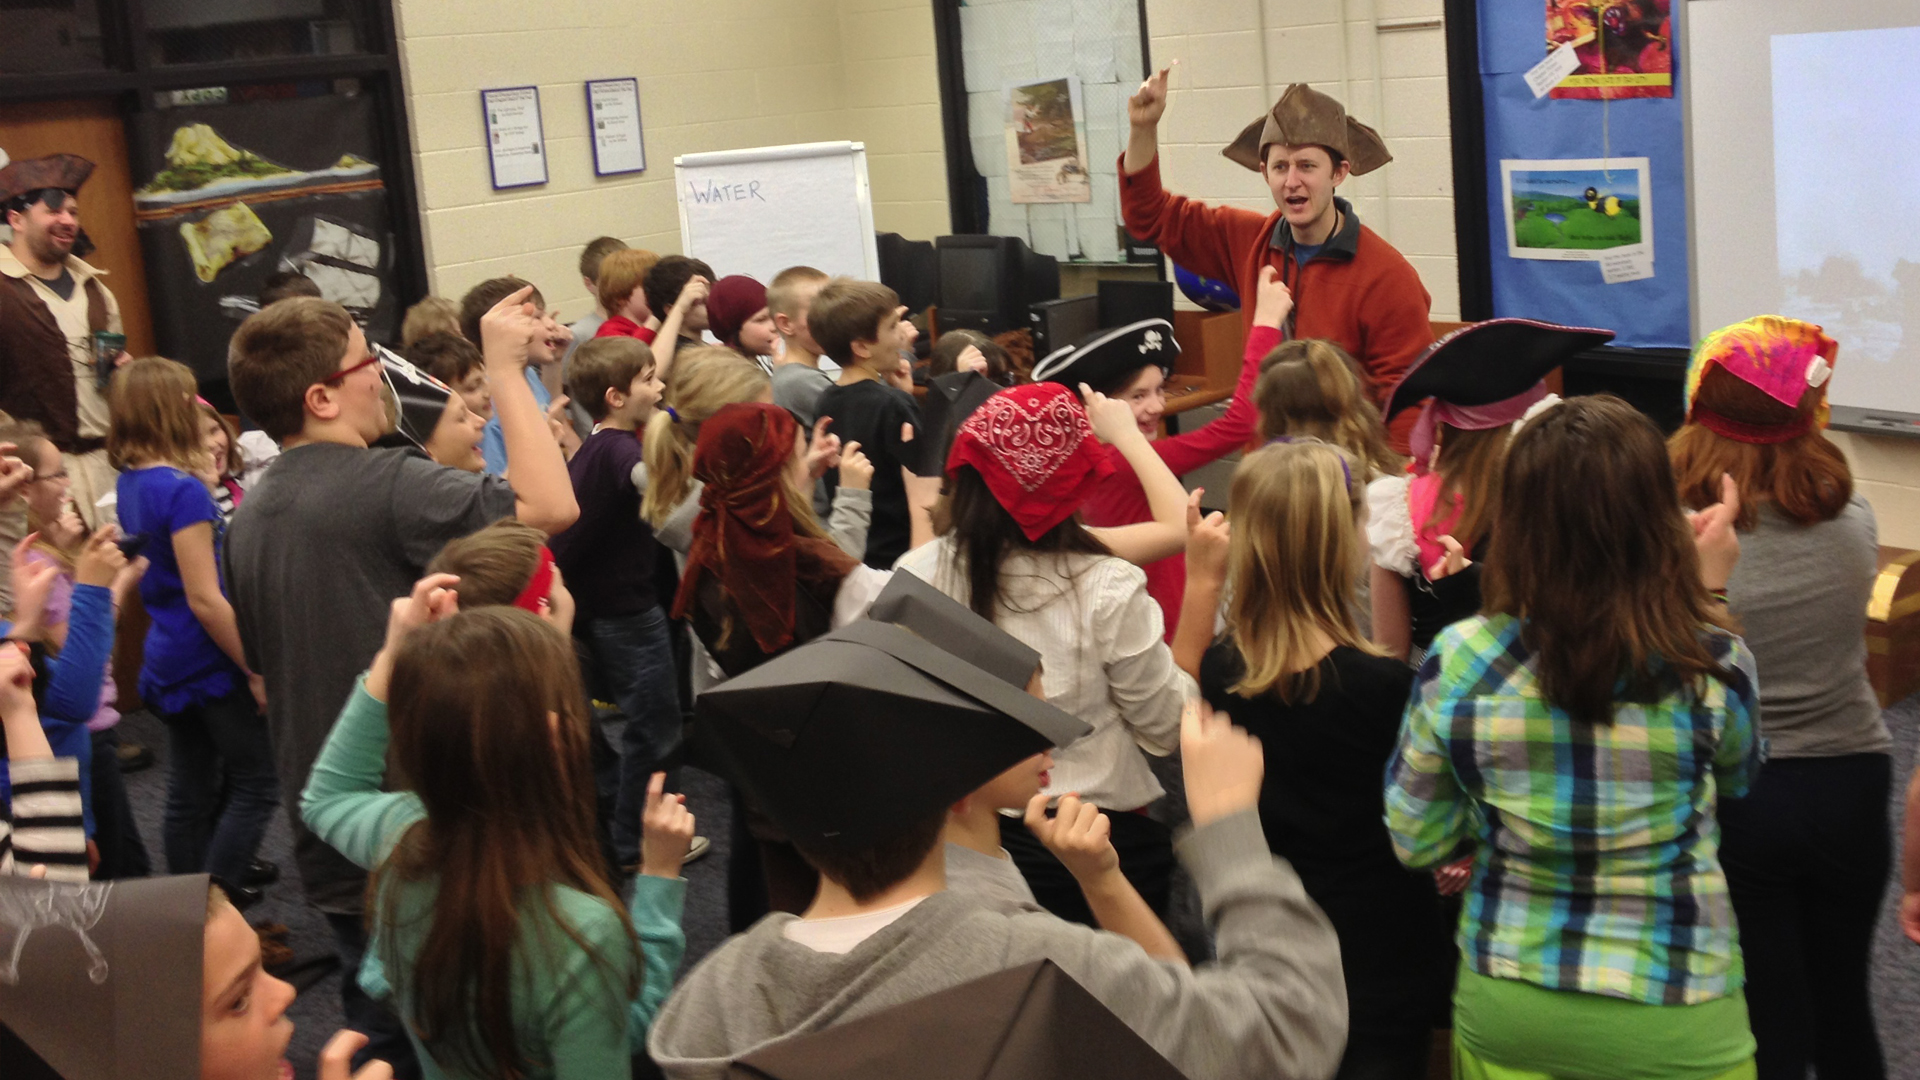 Laura and Robert Sams visit a Michigan school for a Pirate-themed Reading Month